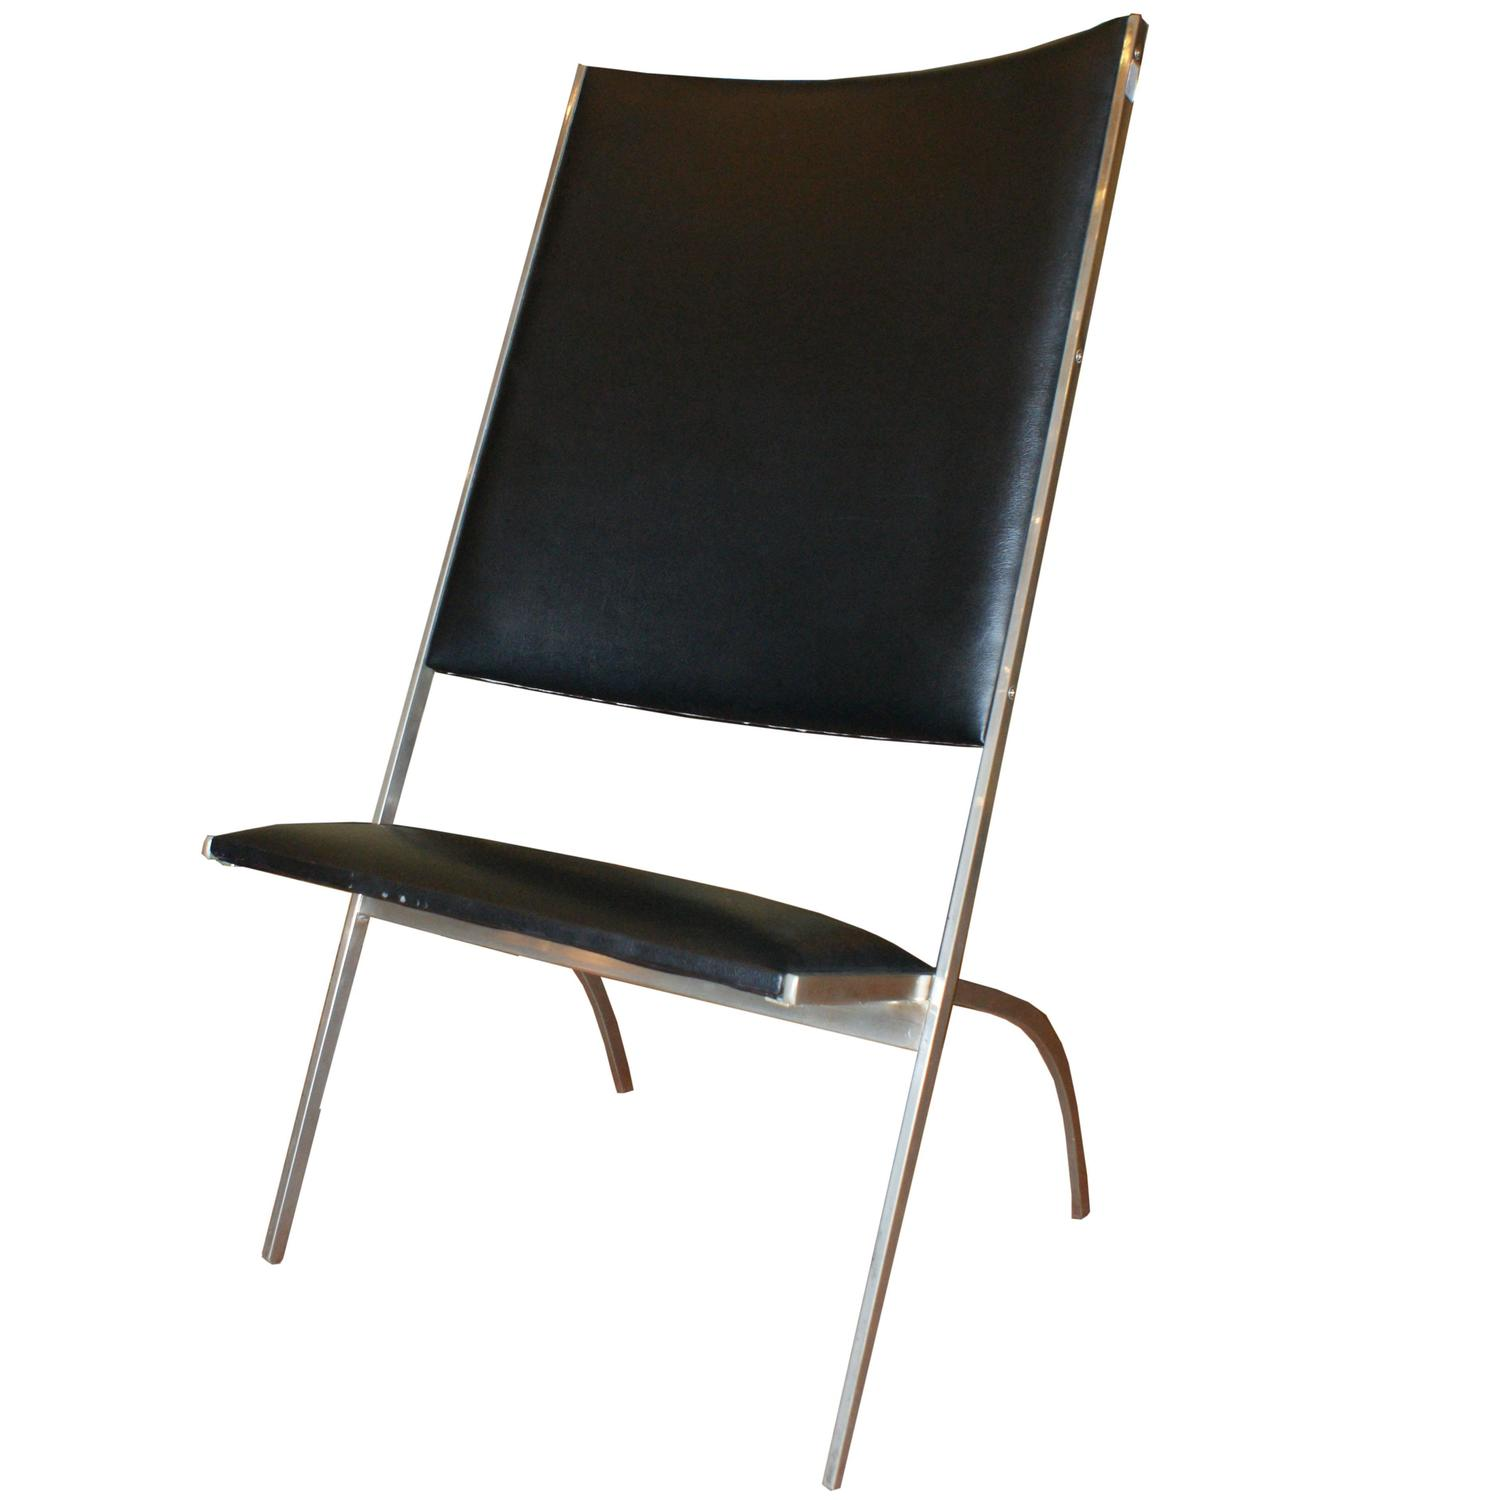 """Gio Ponti """"Gabriela"""" Chairs 1971 For Sale at 1stdibs"""